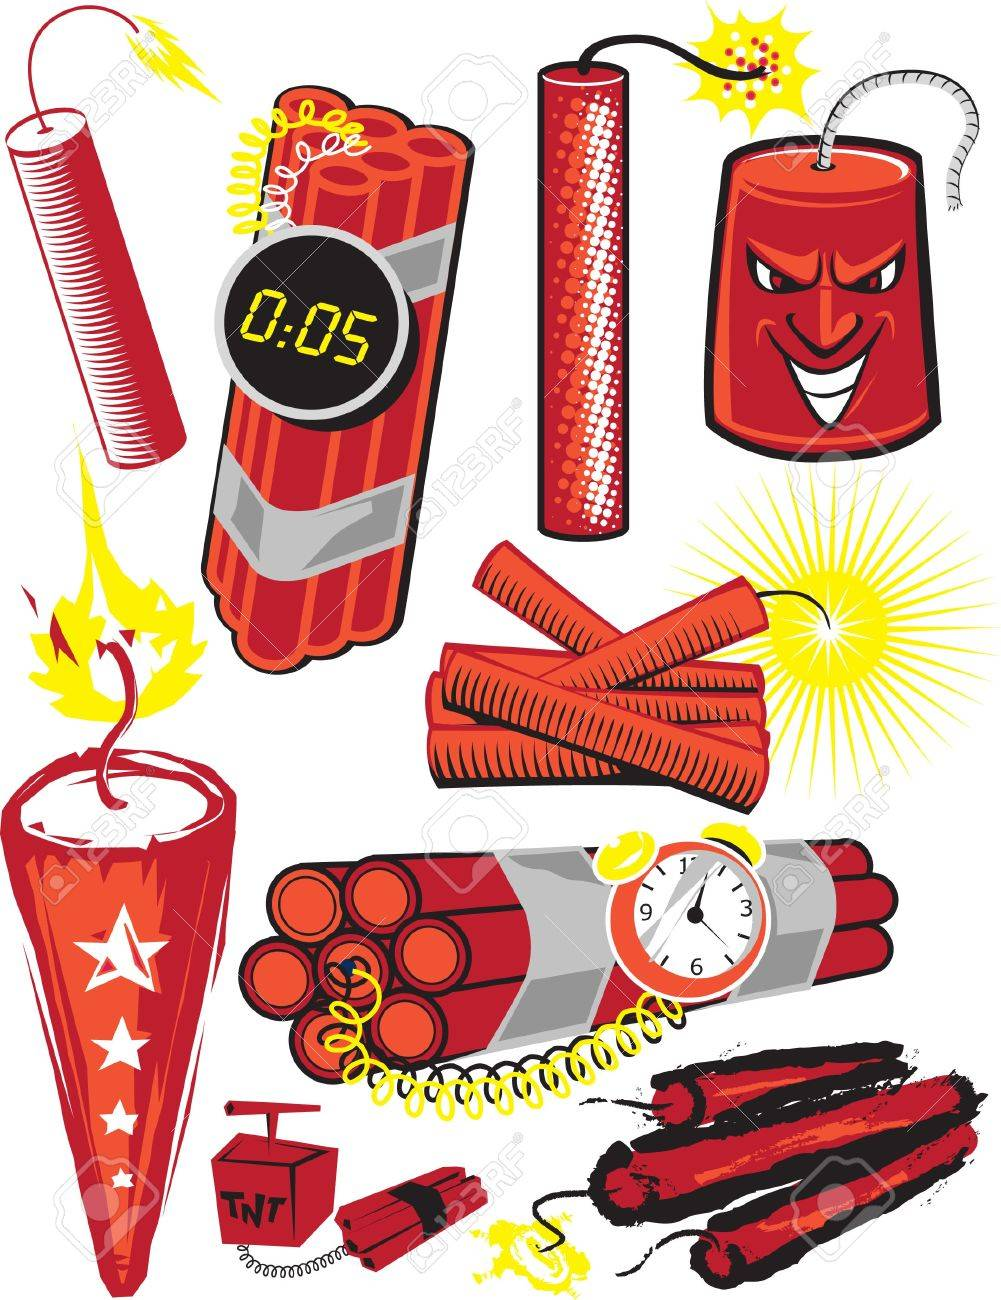 Dynamite Collection Stock Vector - 13453581